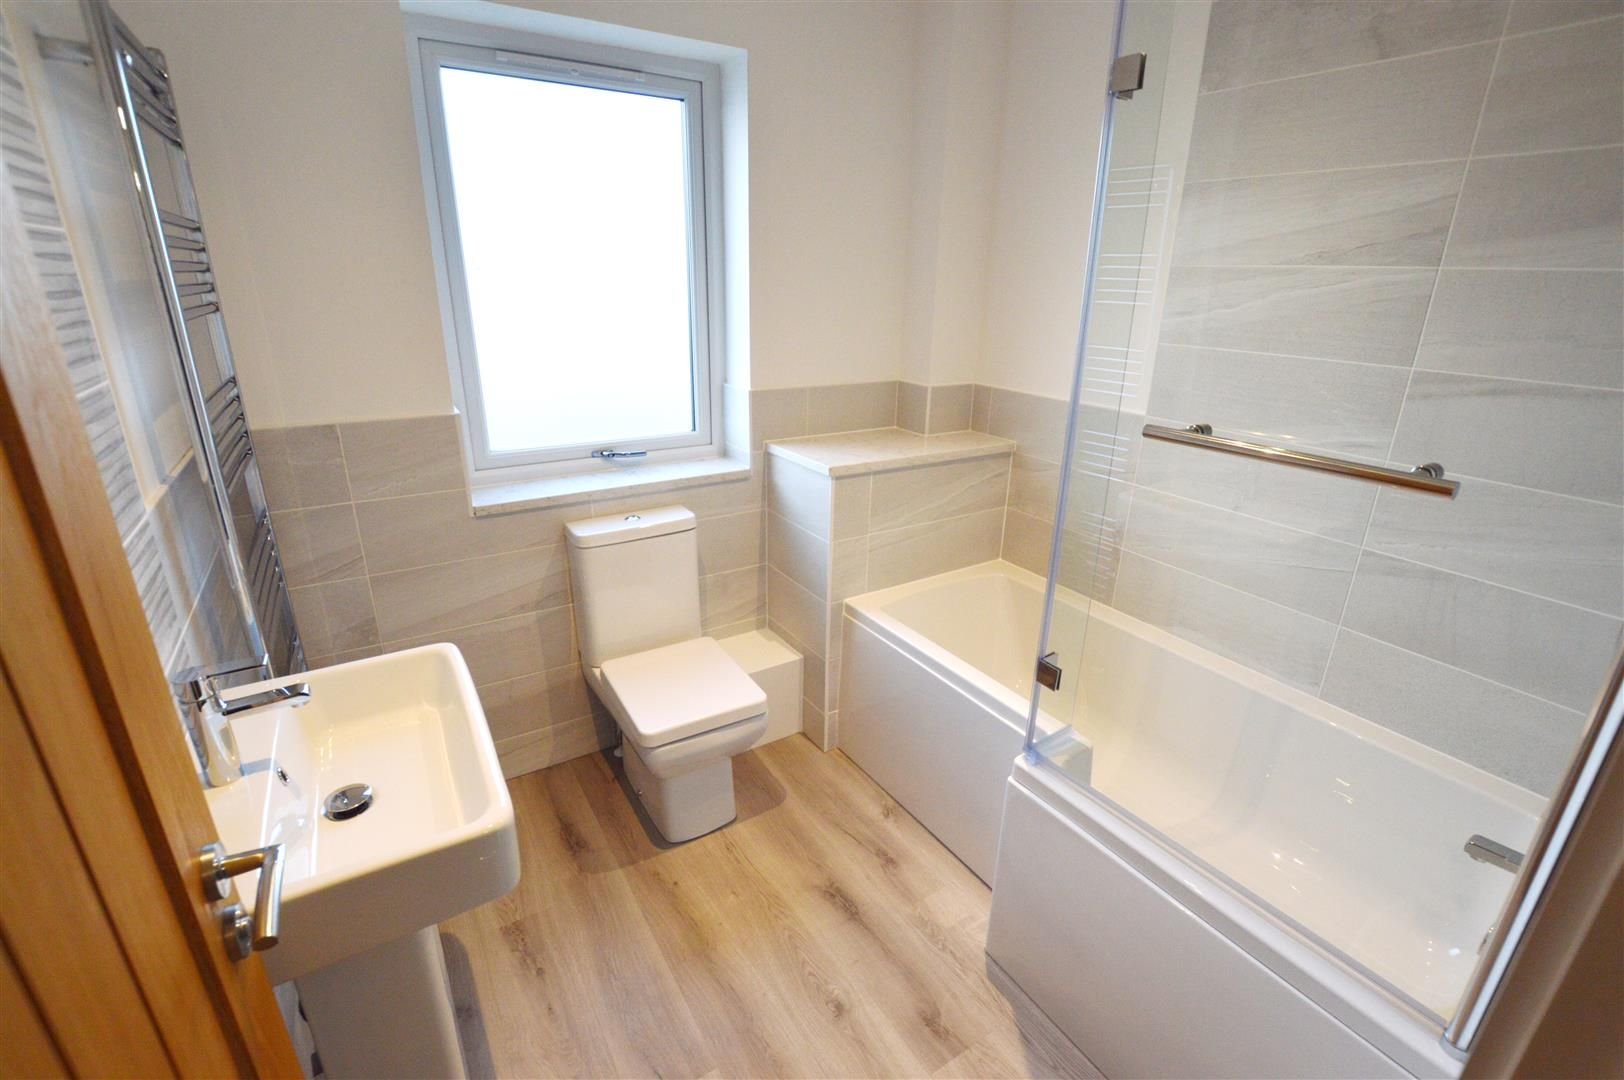 3 bed end-of-terrace for sale in Leominster 7